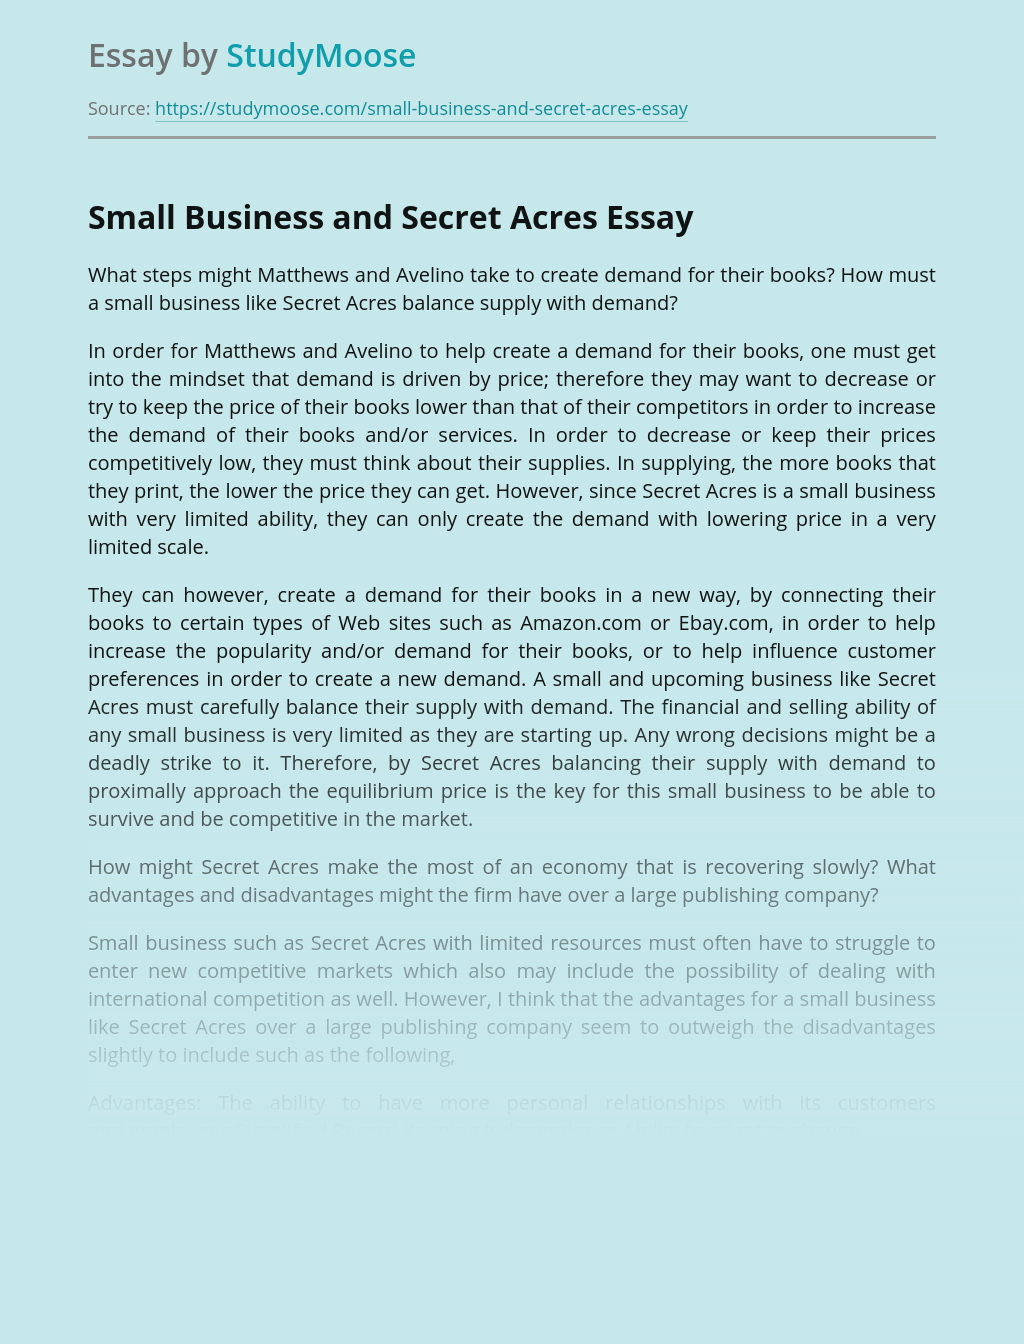 Small Business and Secret Acres